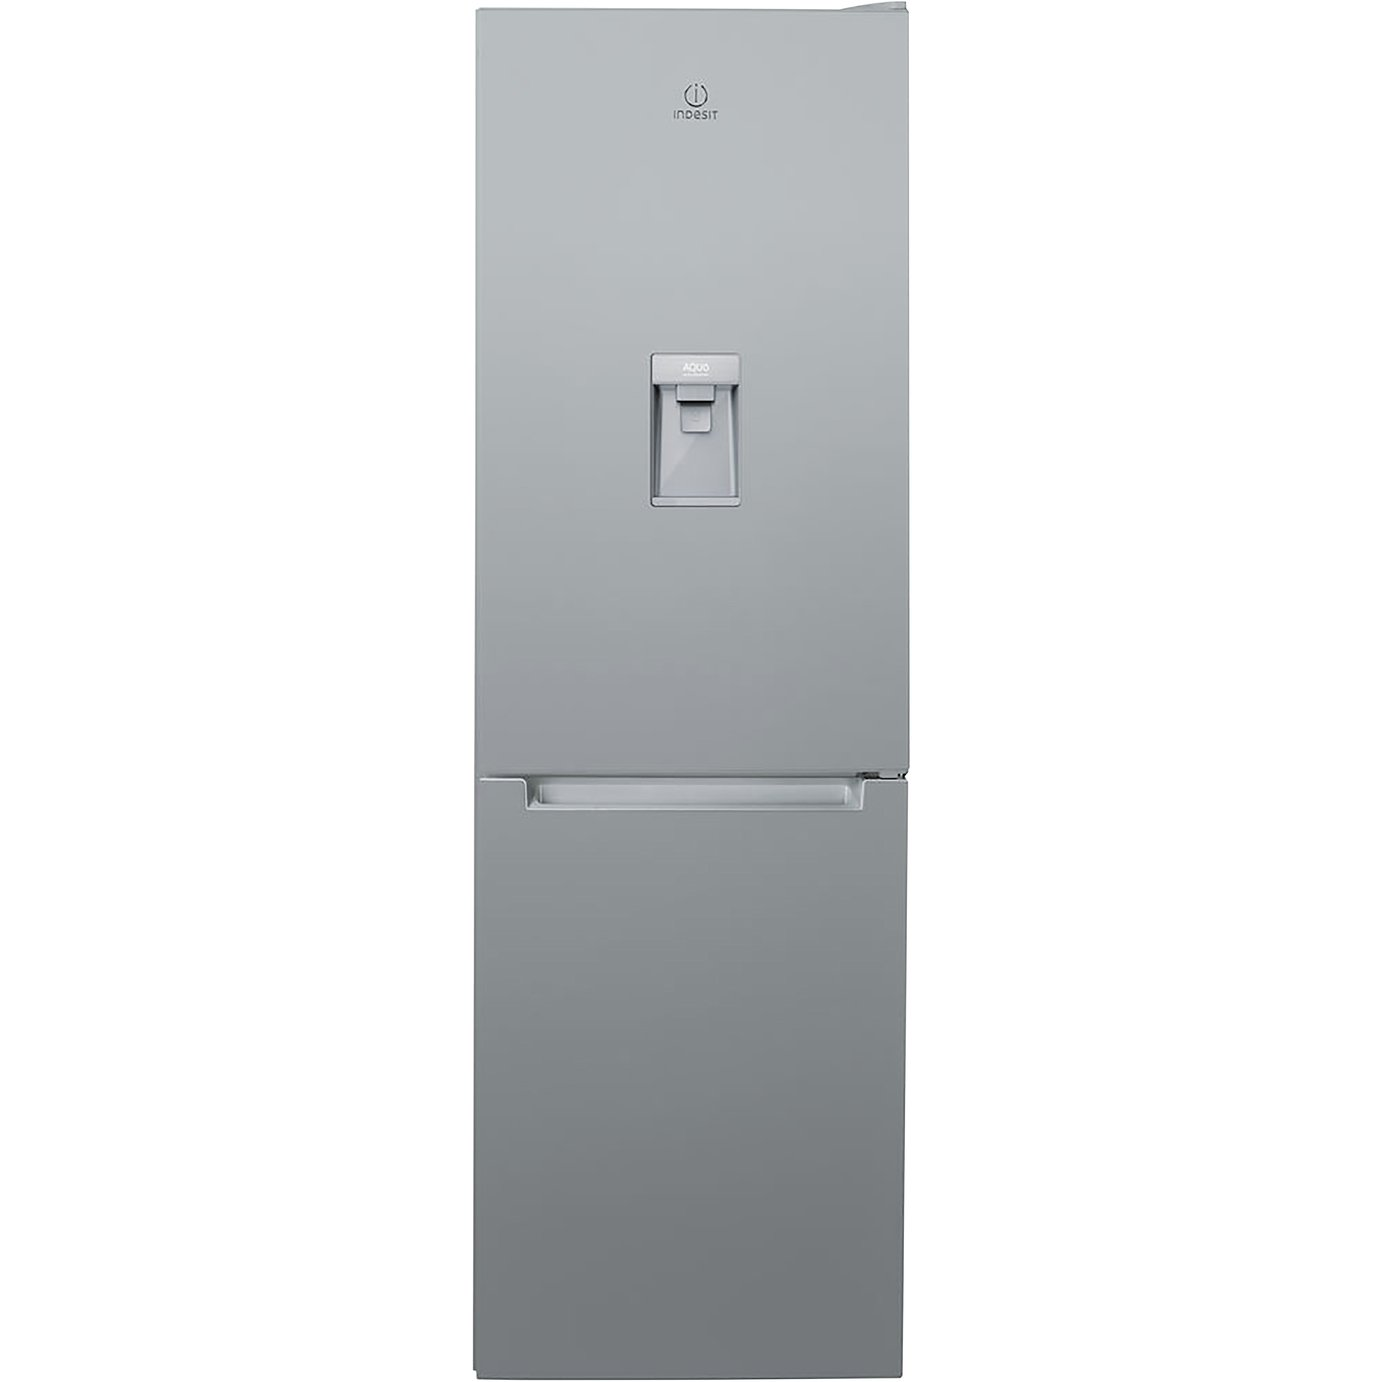 Indesit LR8S1SAQ Fridge Freezer - Silver